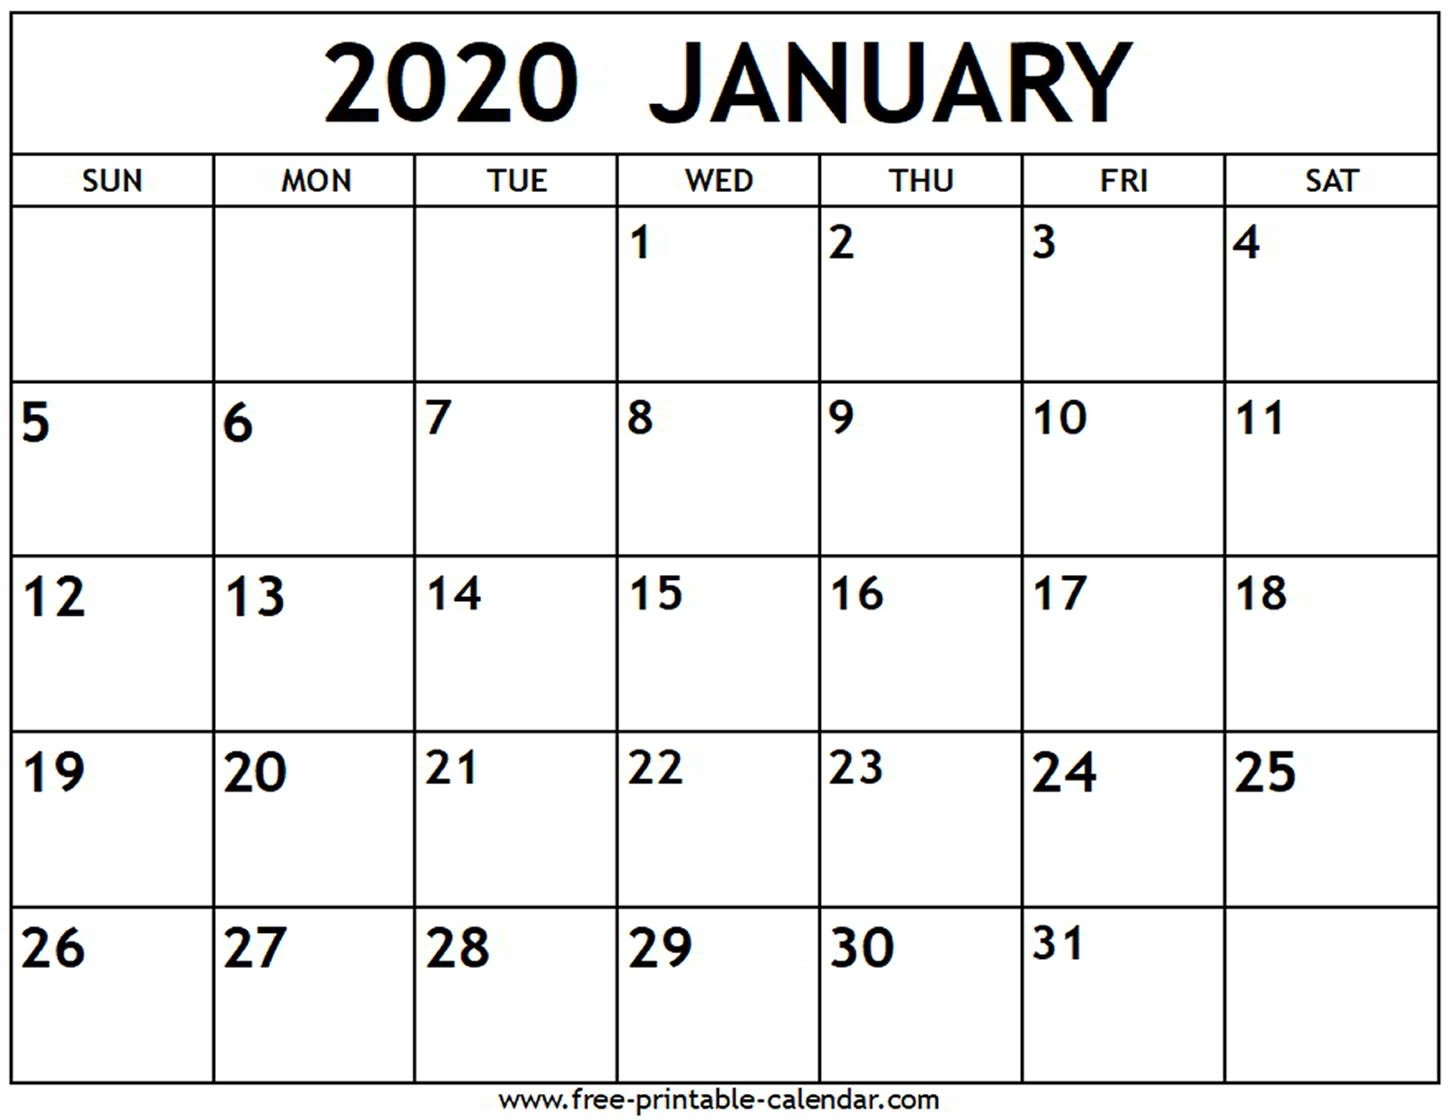 January 2020 Calendar - Free-Printable-Calendar-January 2020 Calendar Us